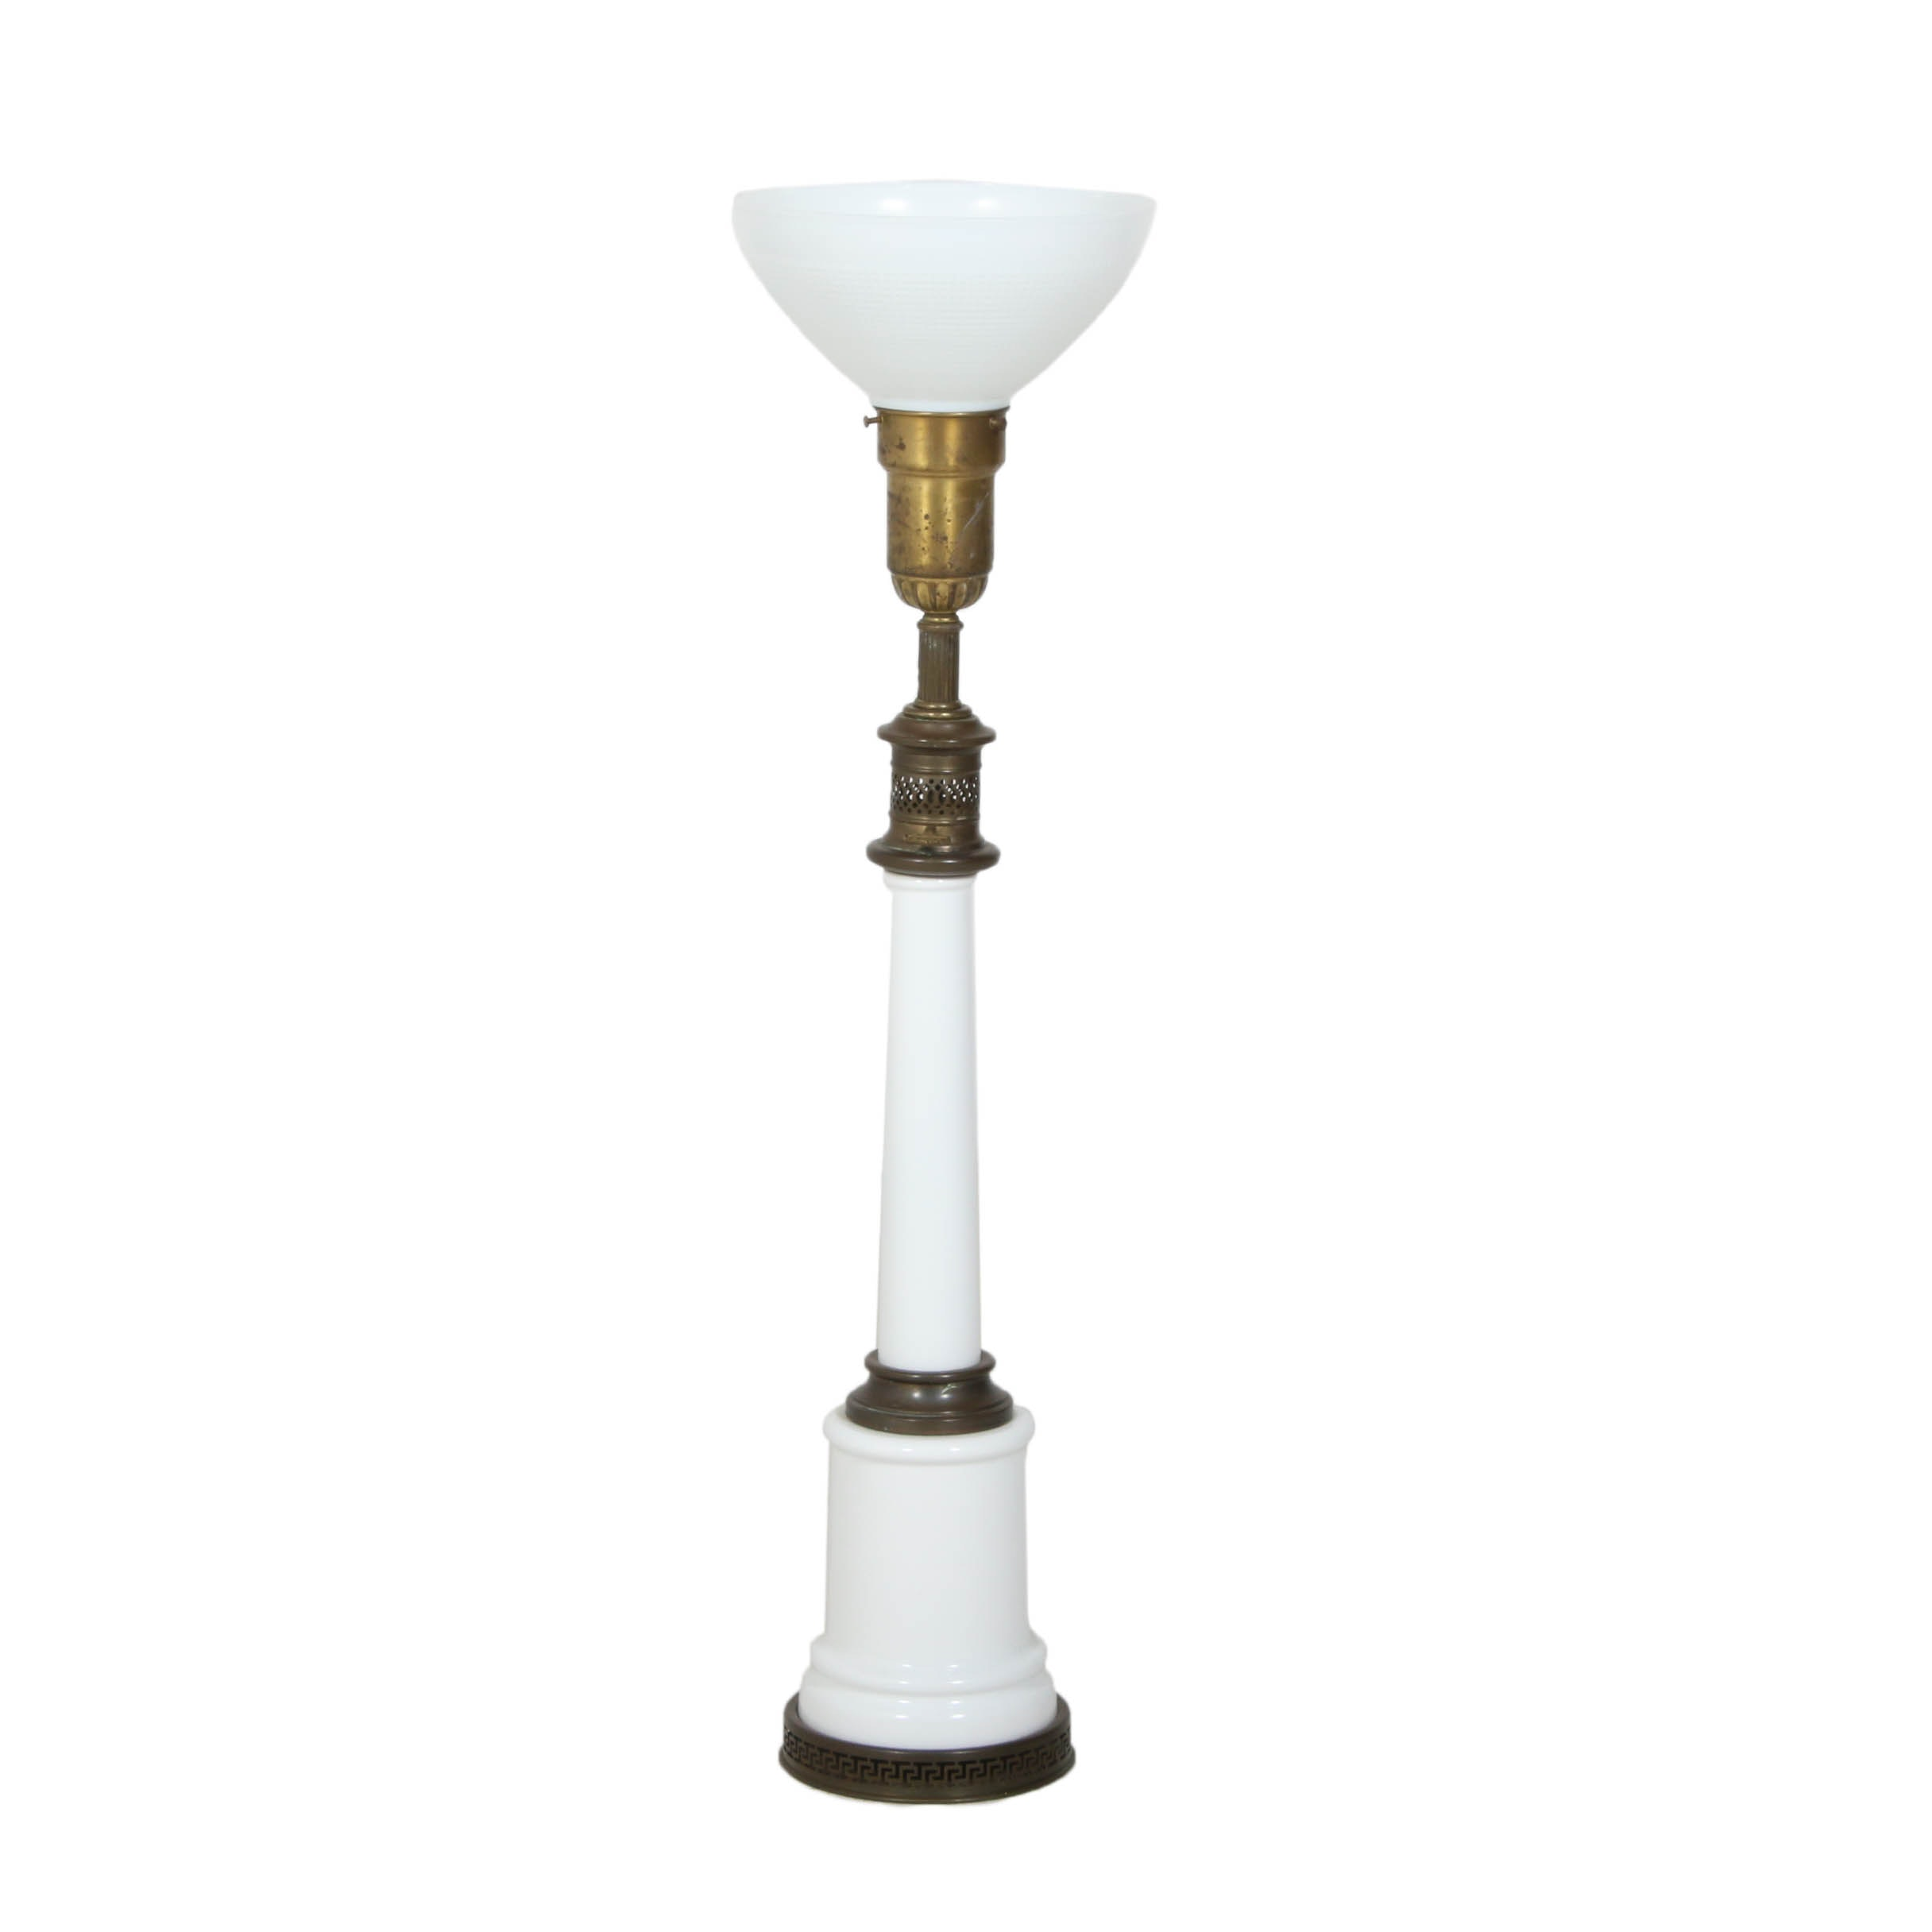 Brass, and Milk Glass Torchiere Table Lamp Attributed to Stiffel